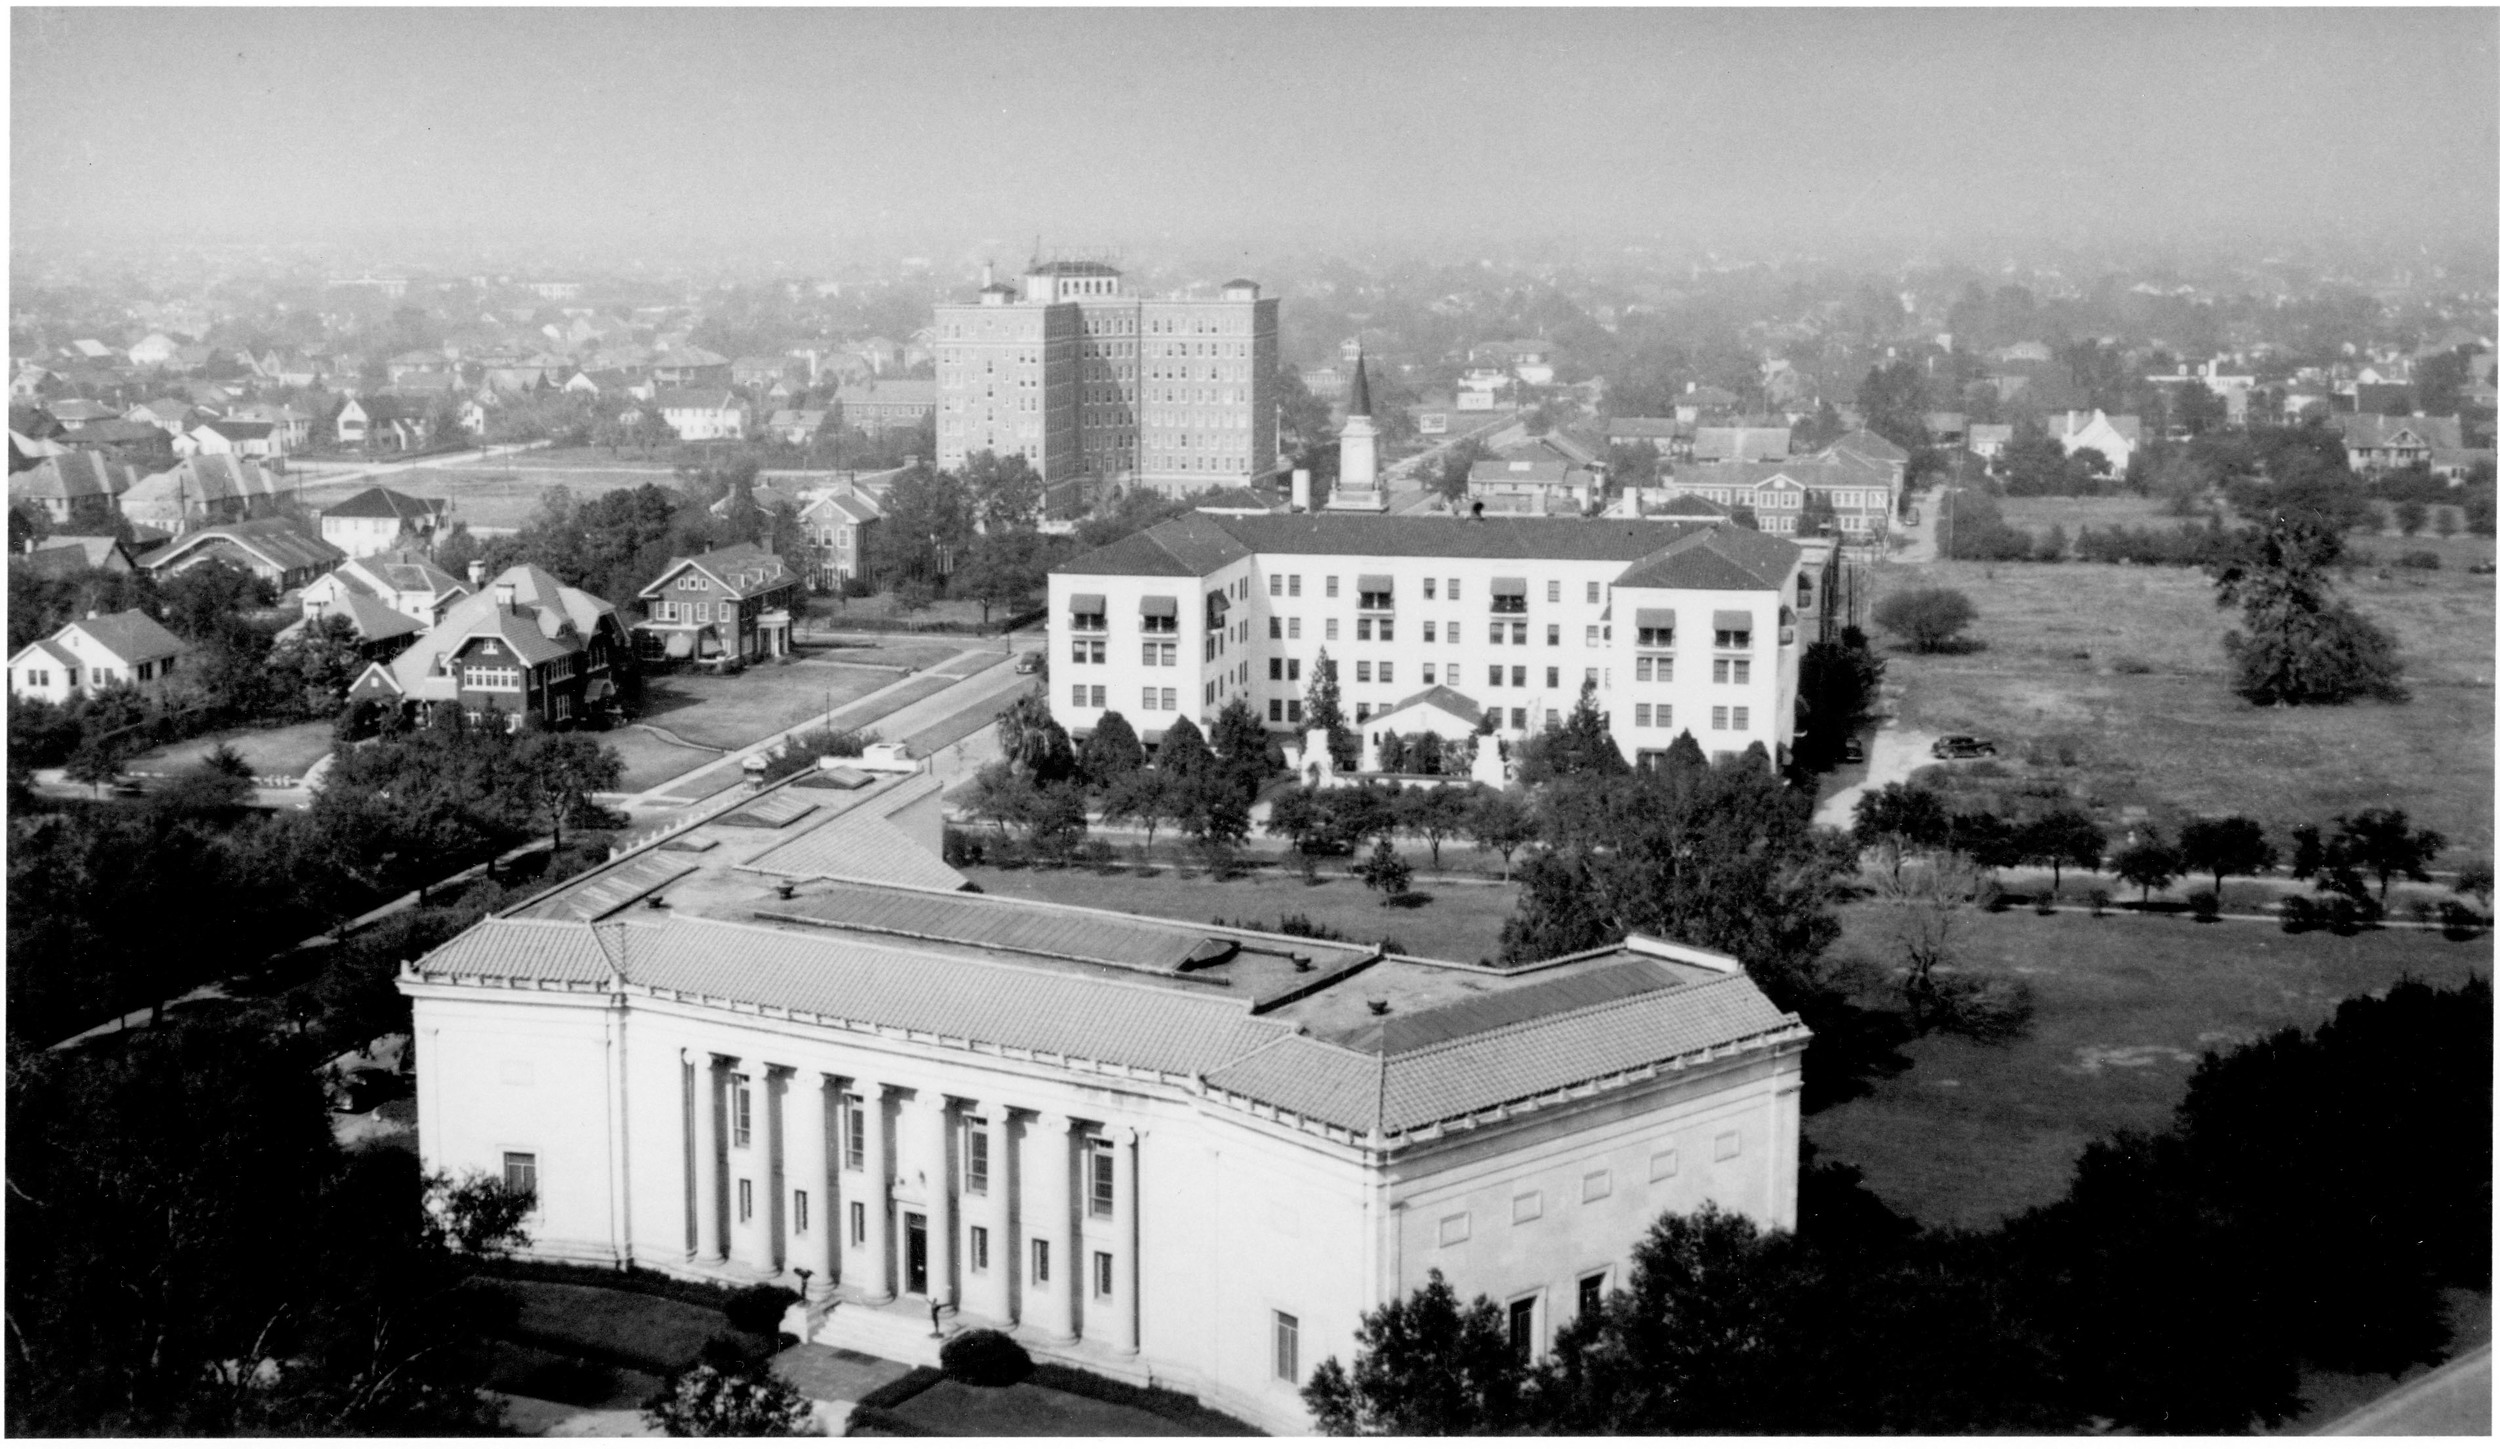 The Museum of Fine Arts Houston and surrounding neighborhood, circa 1926. Used with permission from the Archives at the Museum of Fine Arts, Houston.